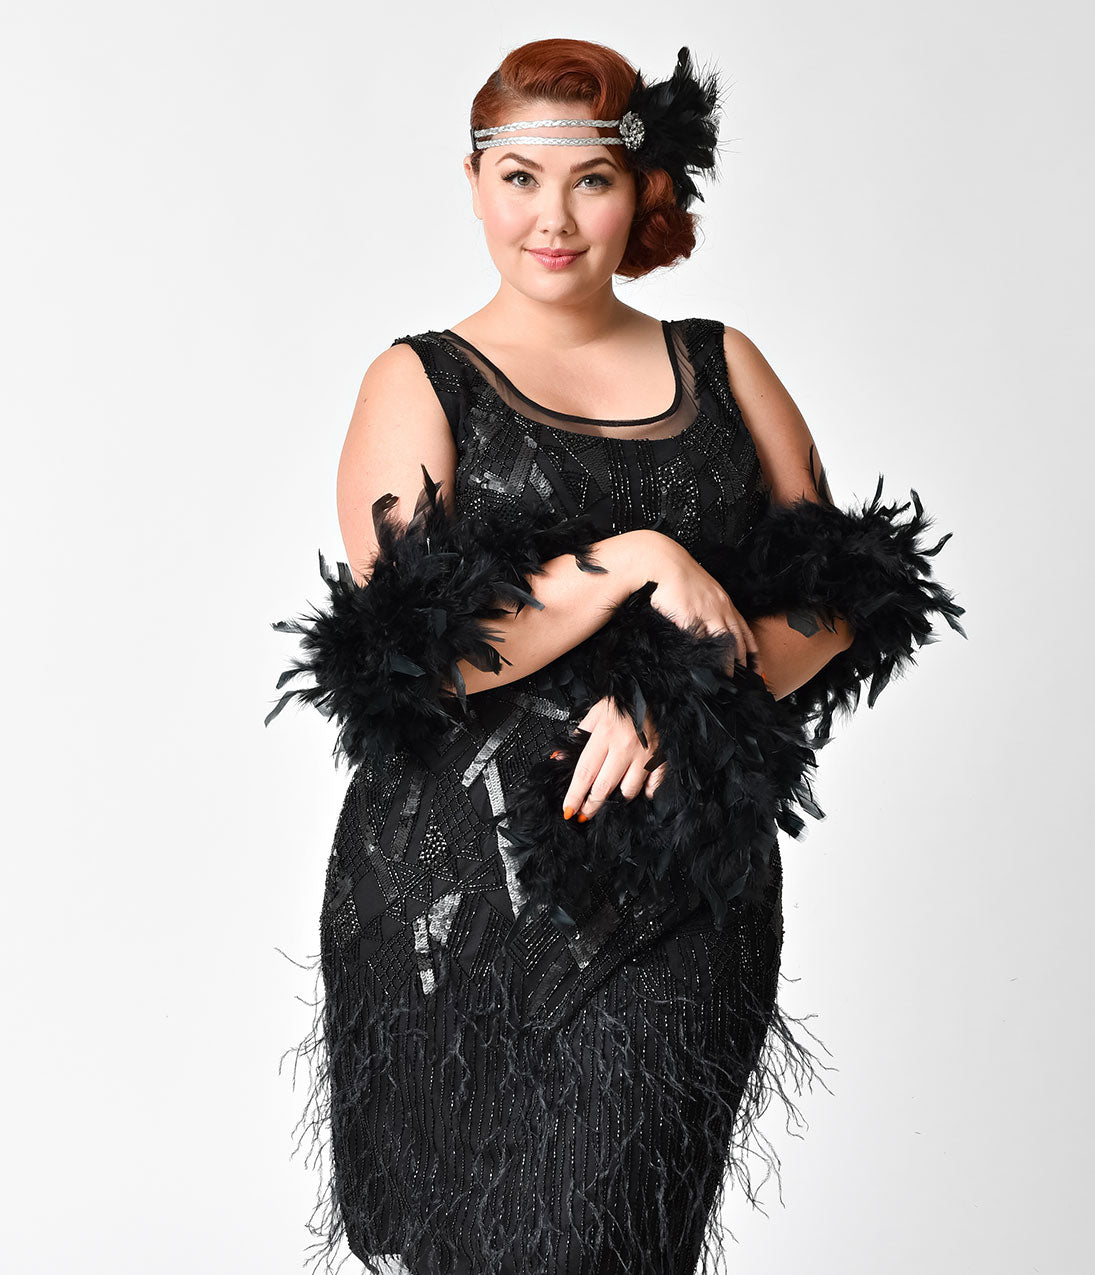 Vintage Inspired Scarves for Winter 1920S Inspired Black Feather Boa $14.00 AT vintagedancer.com